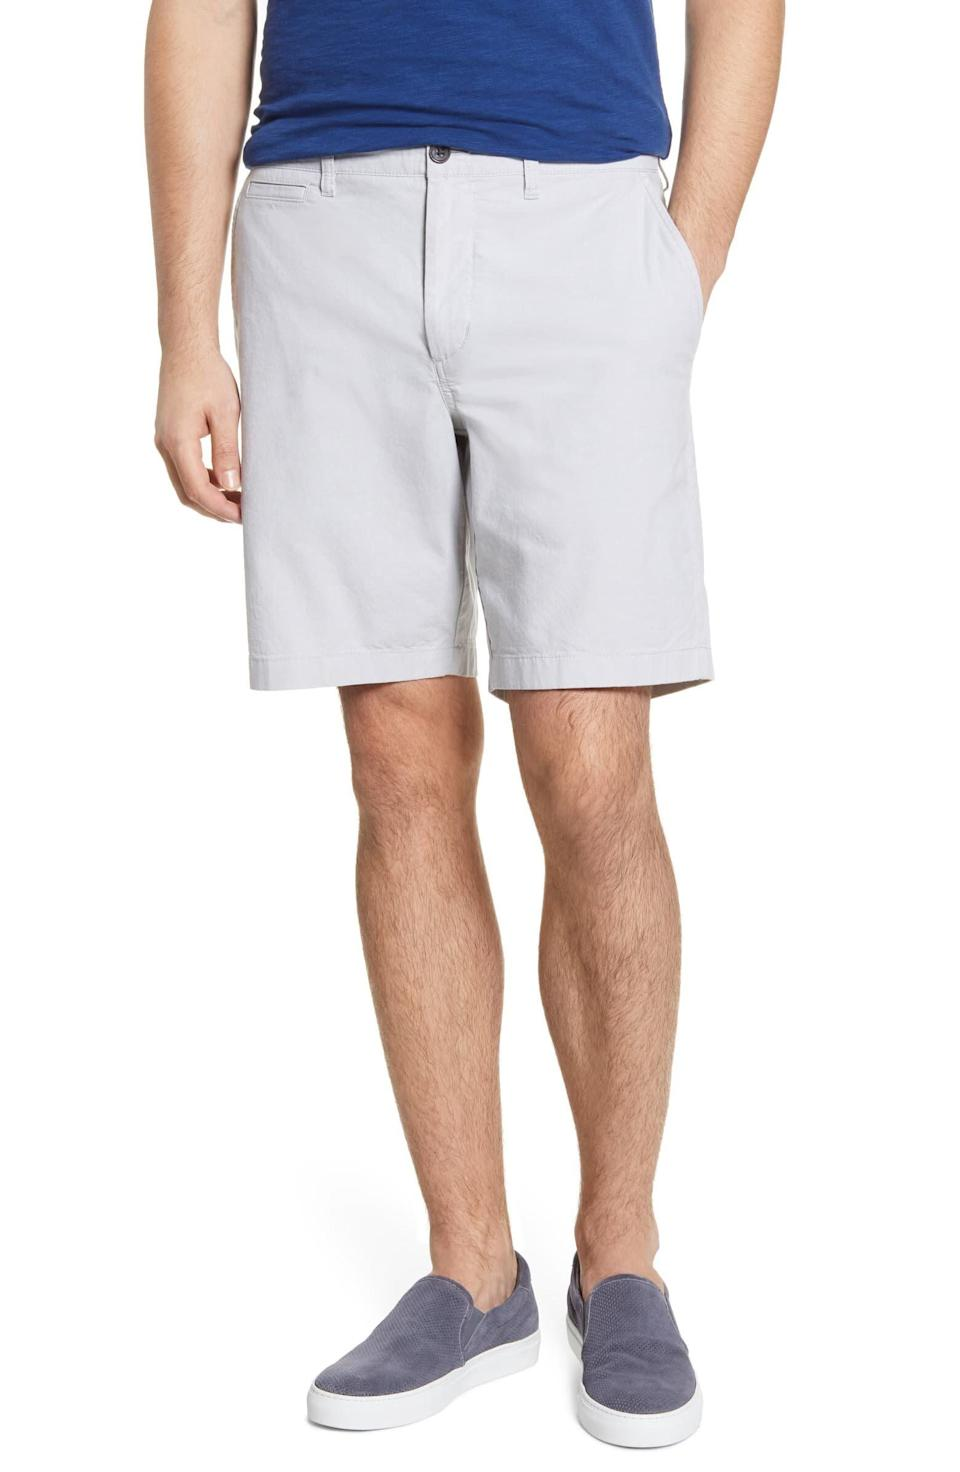 "Normally $60, find these <a href=""https://fave.co/31Zeesv"" rel=""nofollow noopener"" target=""_blank"" data-ylk=""slk:1901 Ballard Slim Fit Stretch Chambray Shorts"" class=""link rapid-noclick-resp"">1901 Ballard Slim Fit Stretch Chambray Shorts</a> on <a href=""https://fave.co/31Zeesv"" rel=""nofollow noopener"" target=""_blank"" data-ylk=""slk:sale for $22 from Nordstrom"" class=""link rapid-noclick-resp"">sale for $22 from Nordstrom</a>."